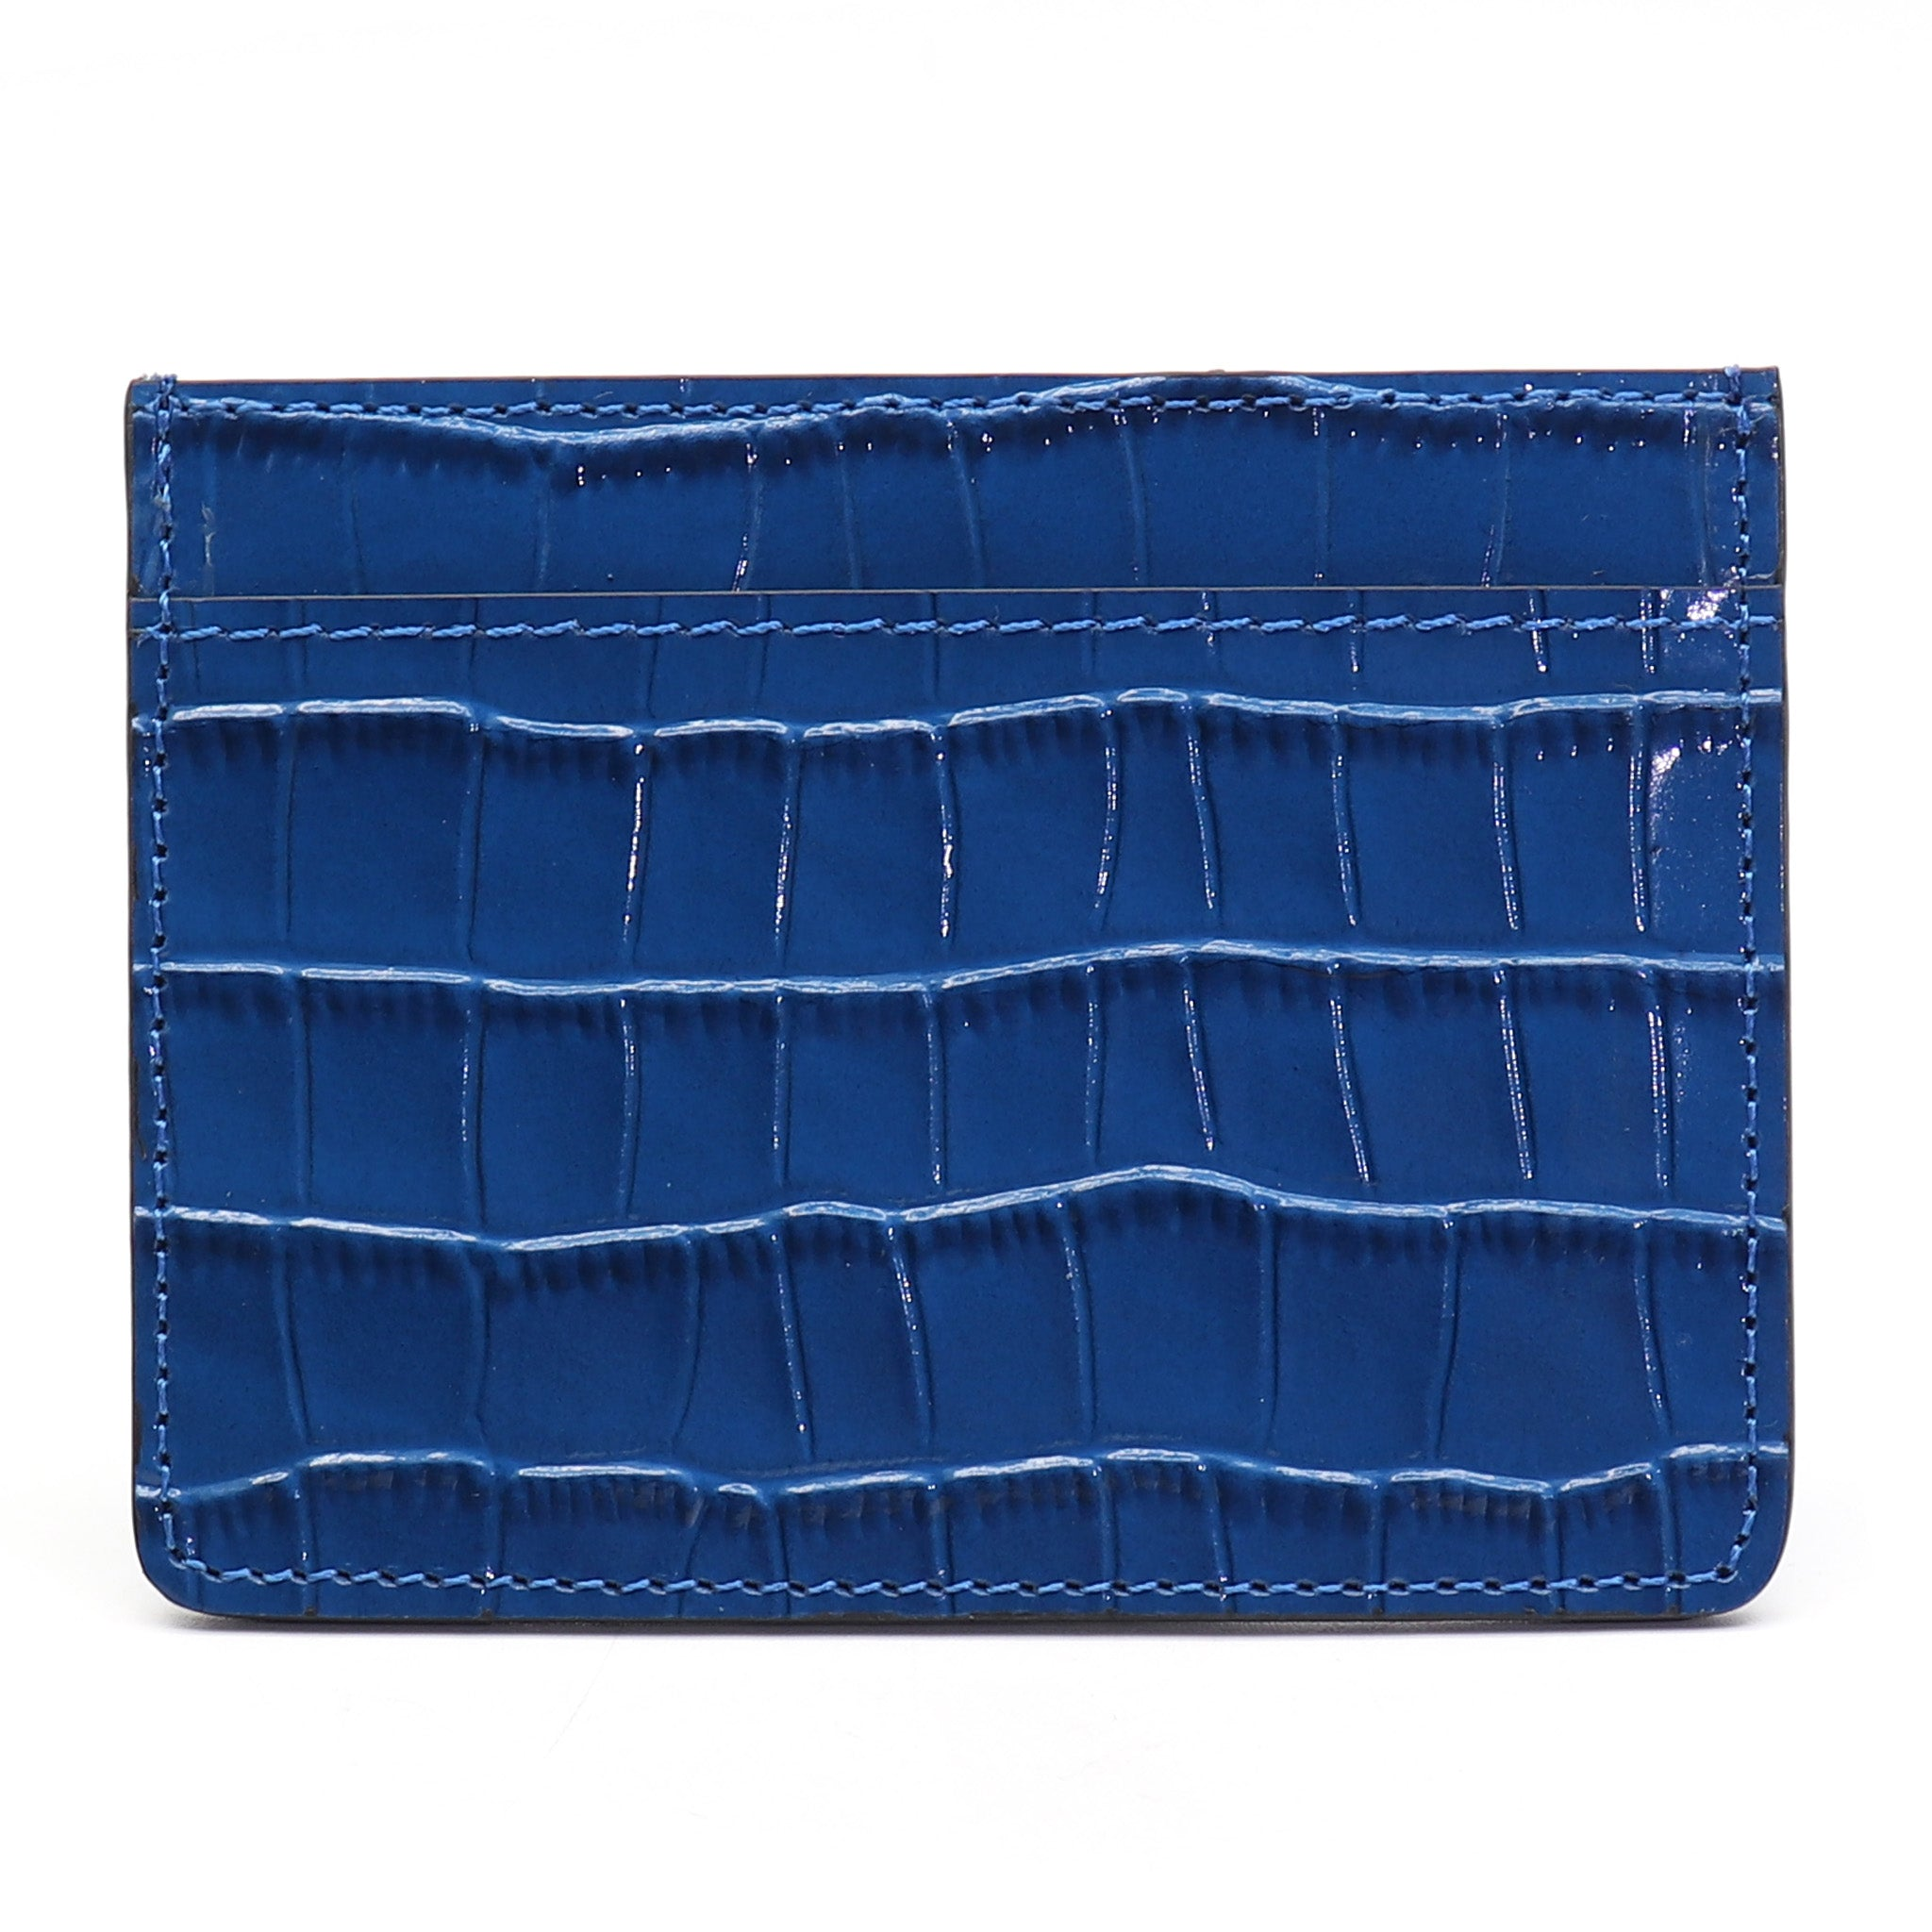 Card Holder - Blue Croco - Equinoxx Design